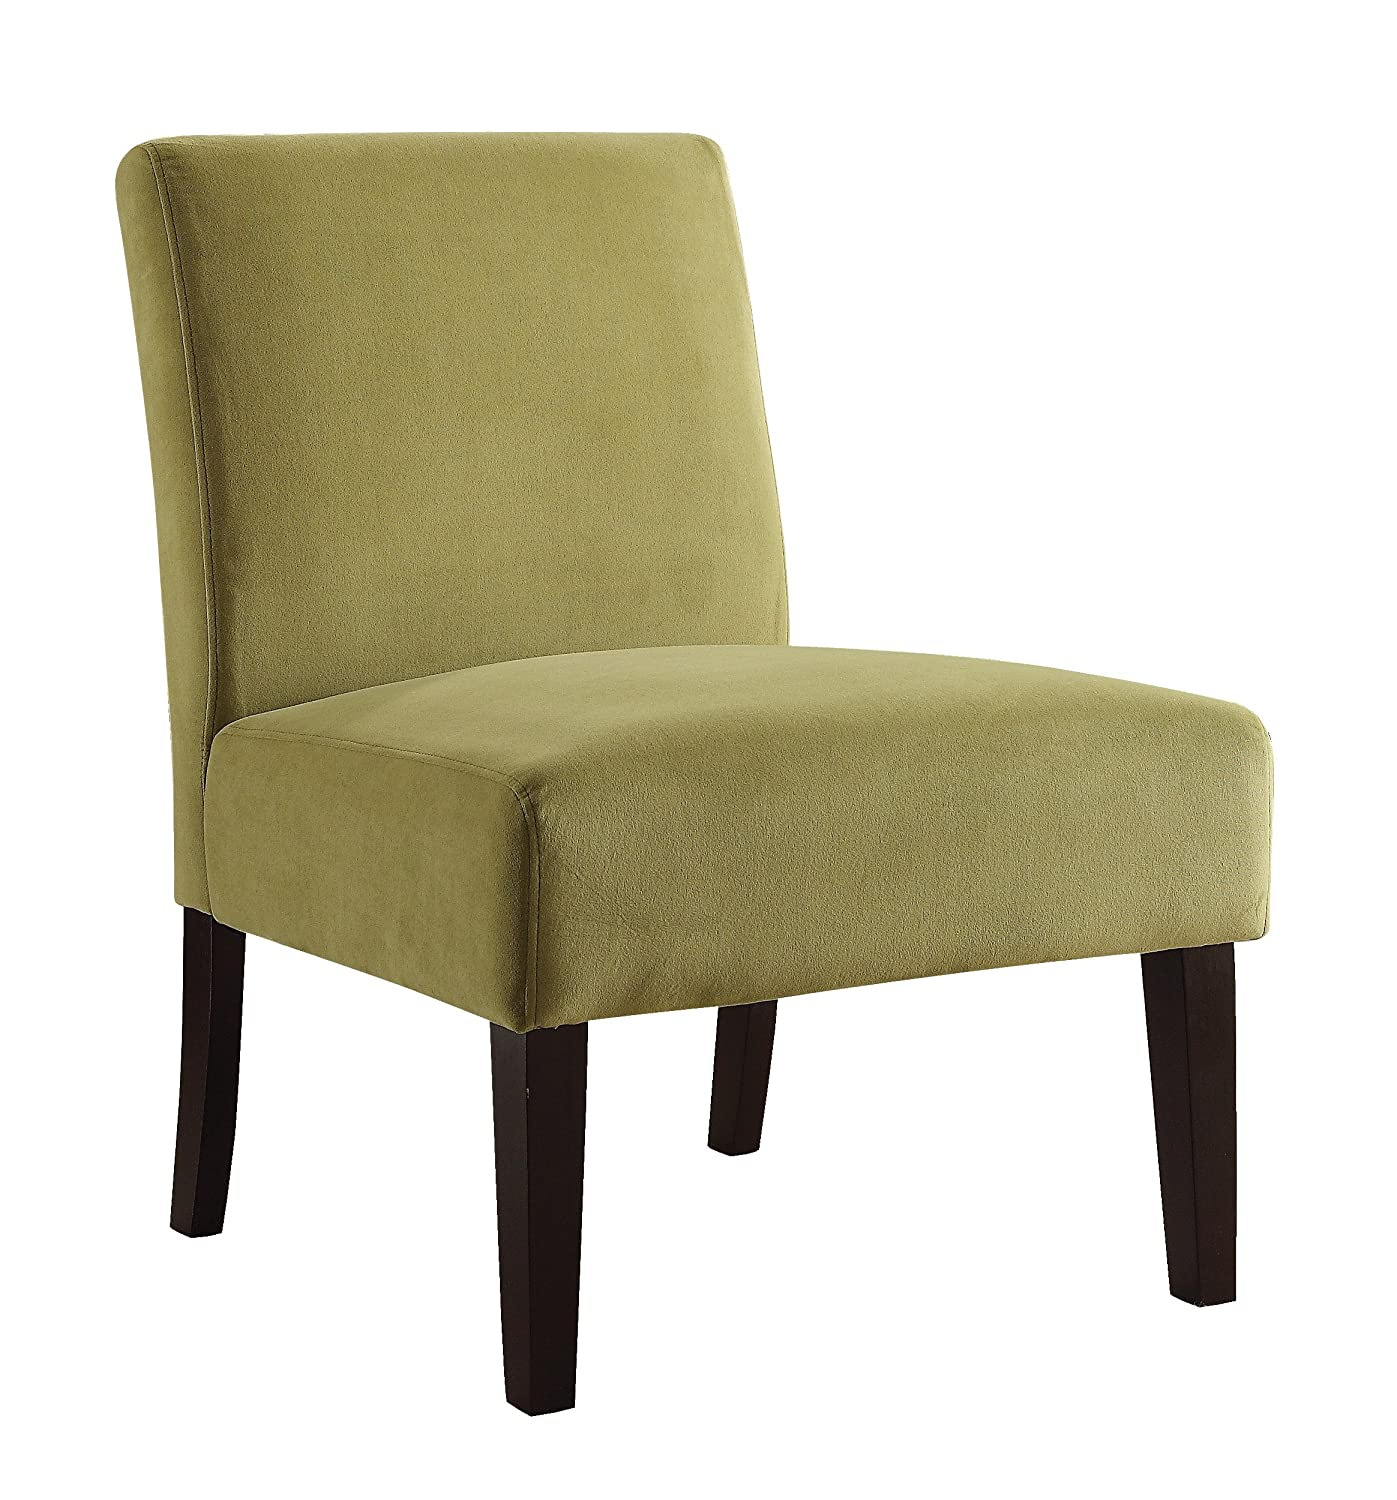 Amazon.com: AVE SIX Laguna Accent Chair With Espresso Finish Solid Wood  Legs, Oyster Velvet Fabric: Kitchen U0026 Dining